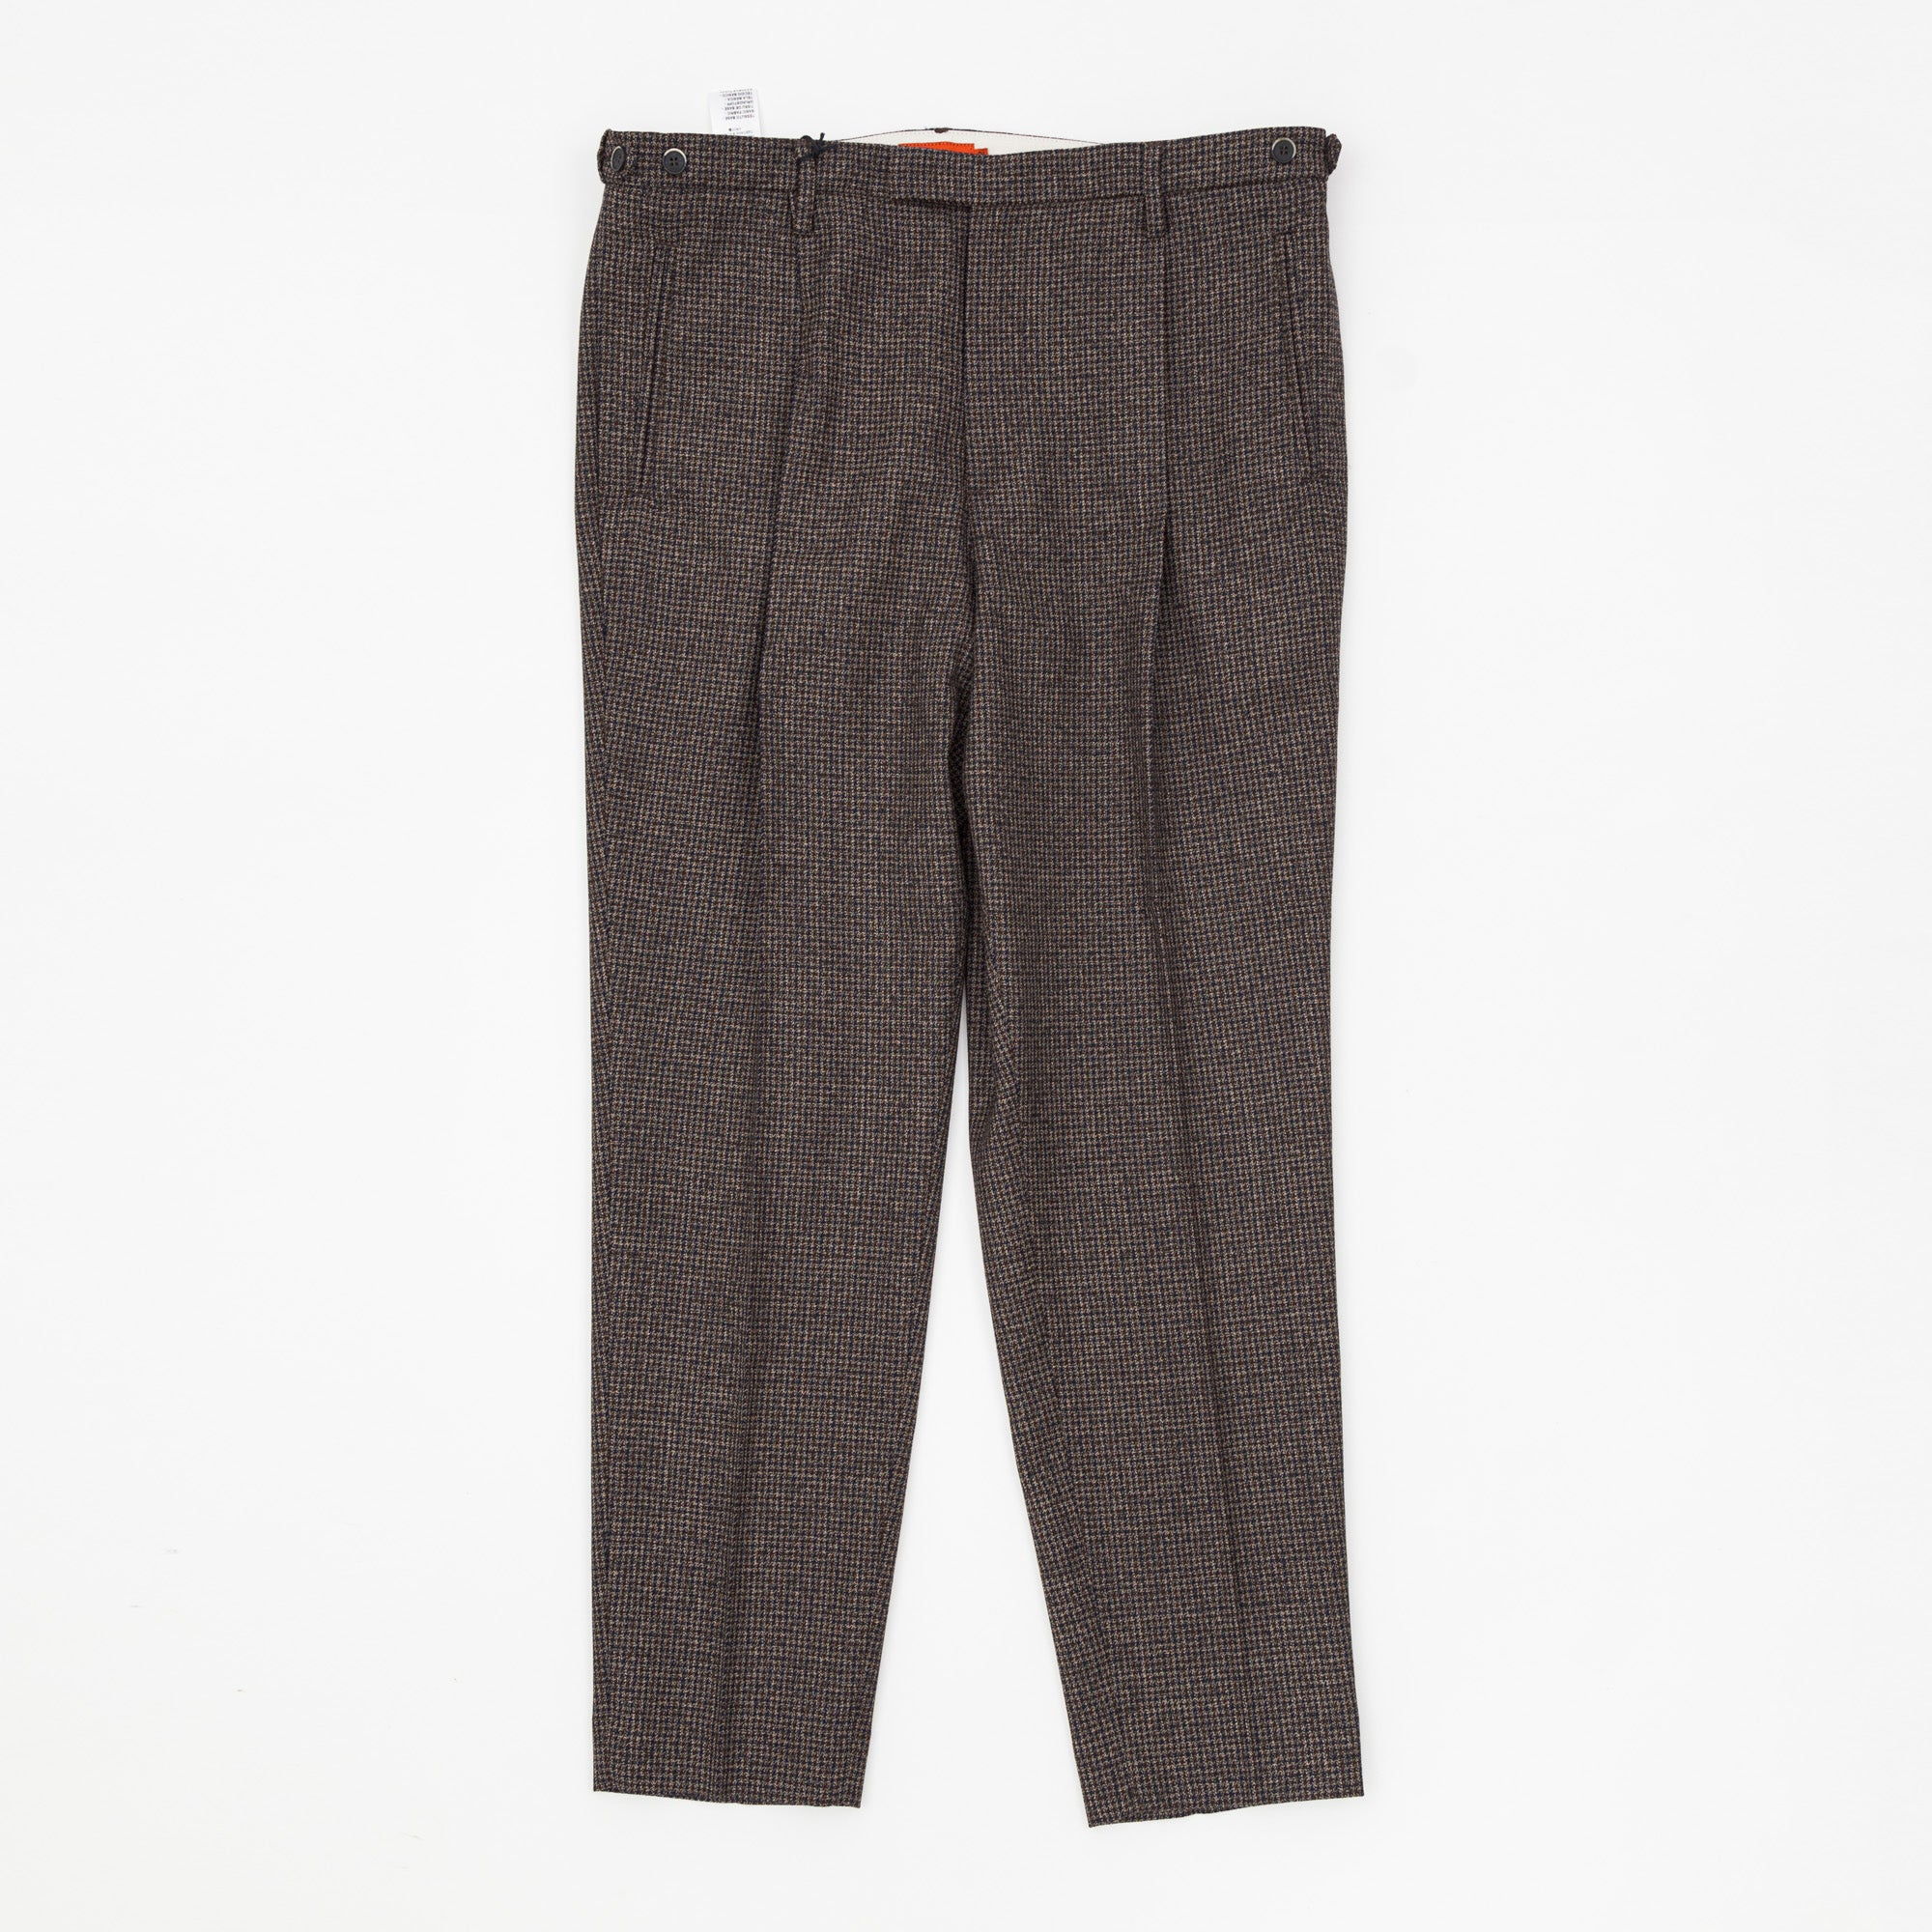 Barena Venezia Tweed Trousers